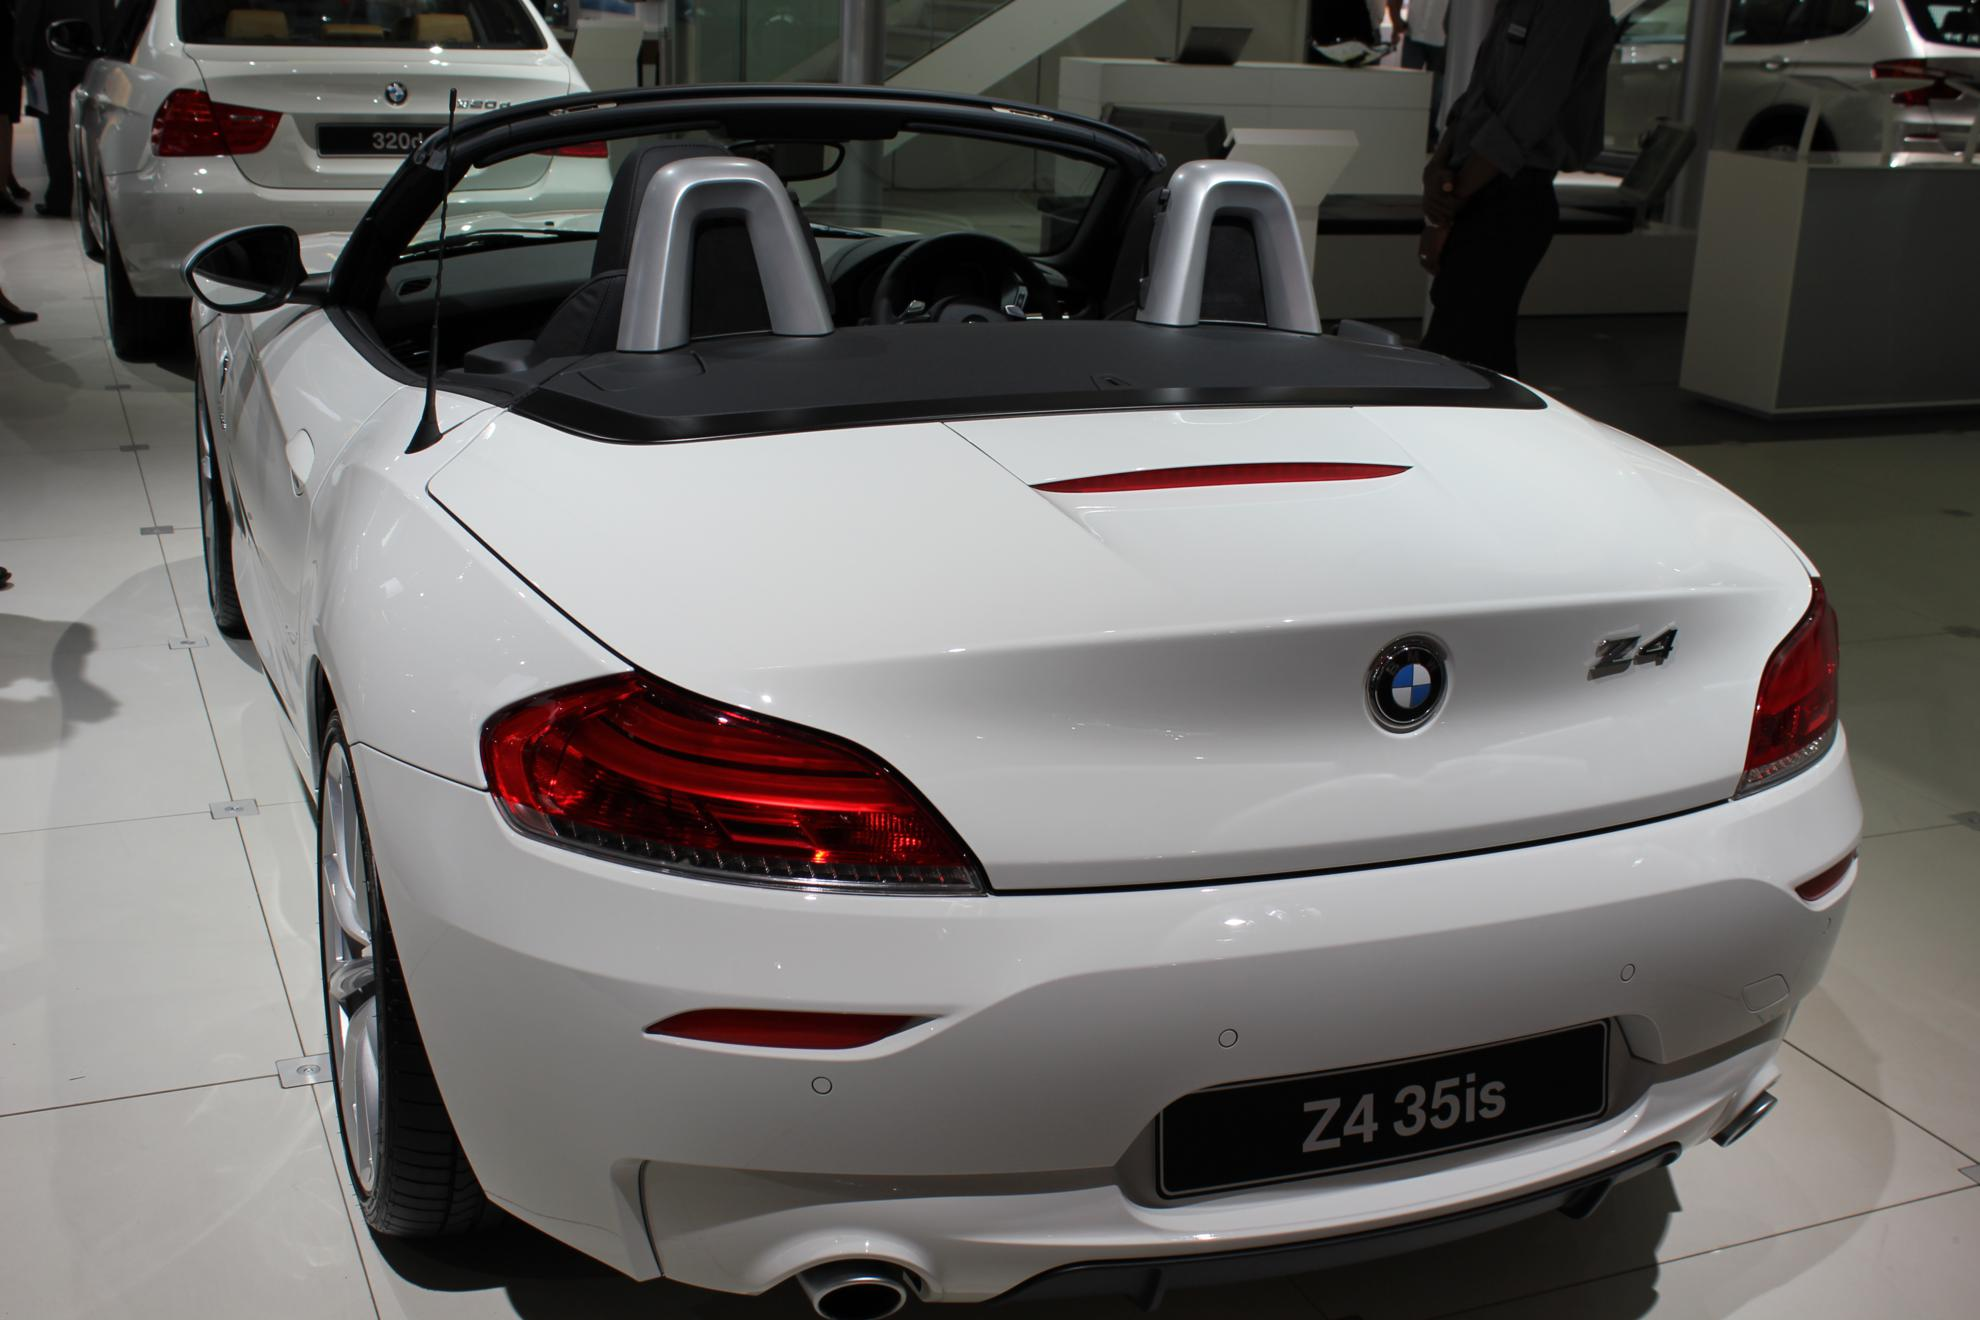 2011 Jims Bmw Z4 35is 3d Car Shows